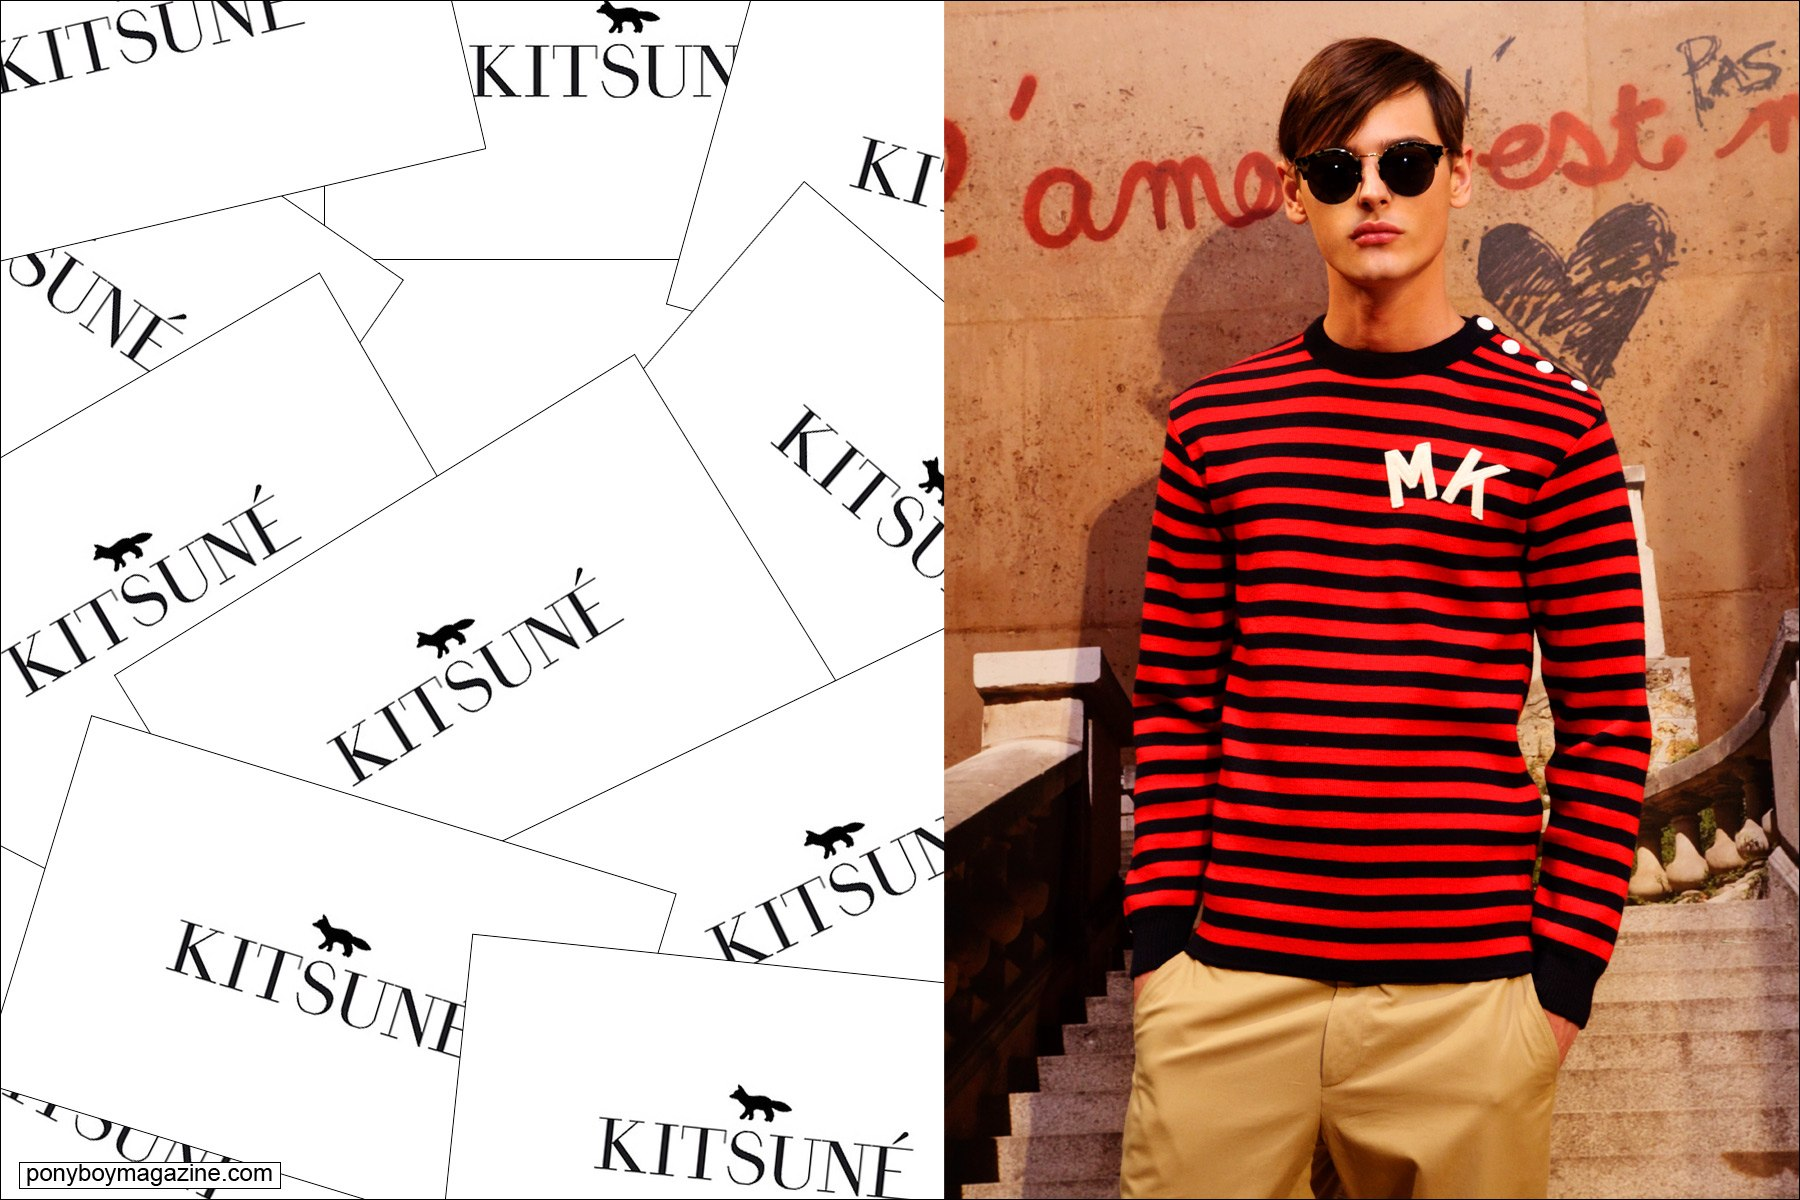 A male model wears a striped t-shirt by Maison Kitsune S/S15 collection. Photographed at NYC Standard Hotel by Alexander Thompson for Ponyboy Magazine.